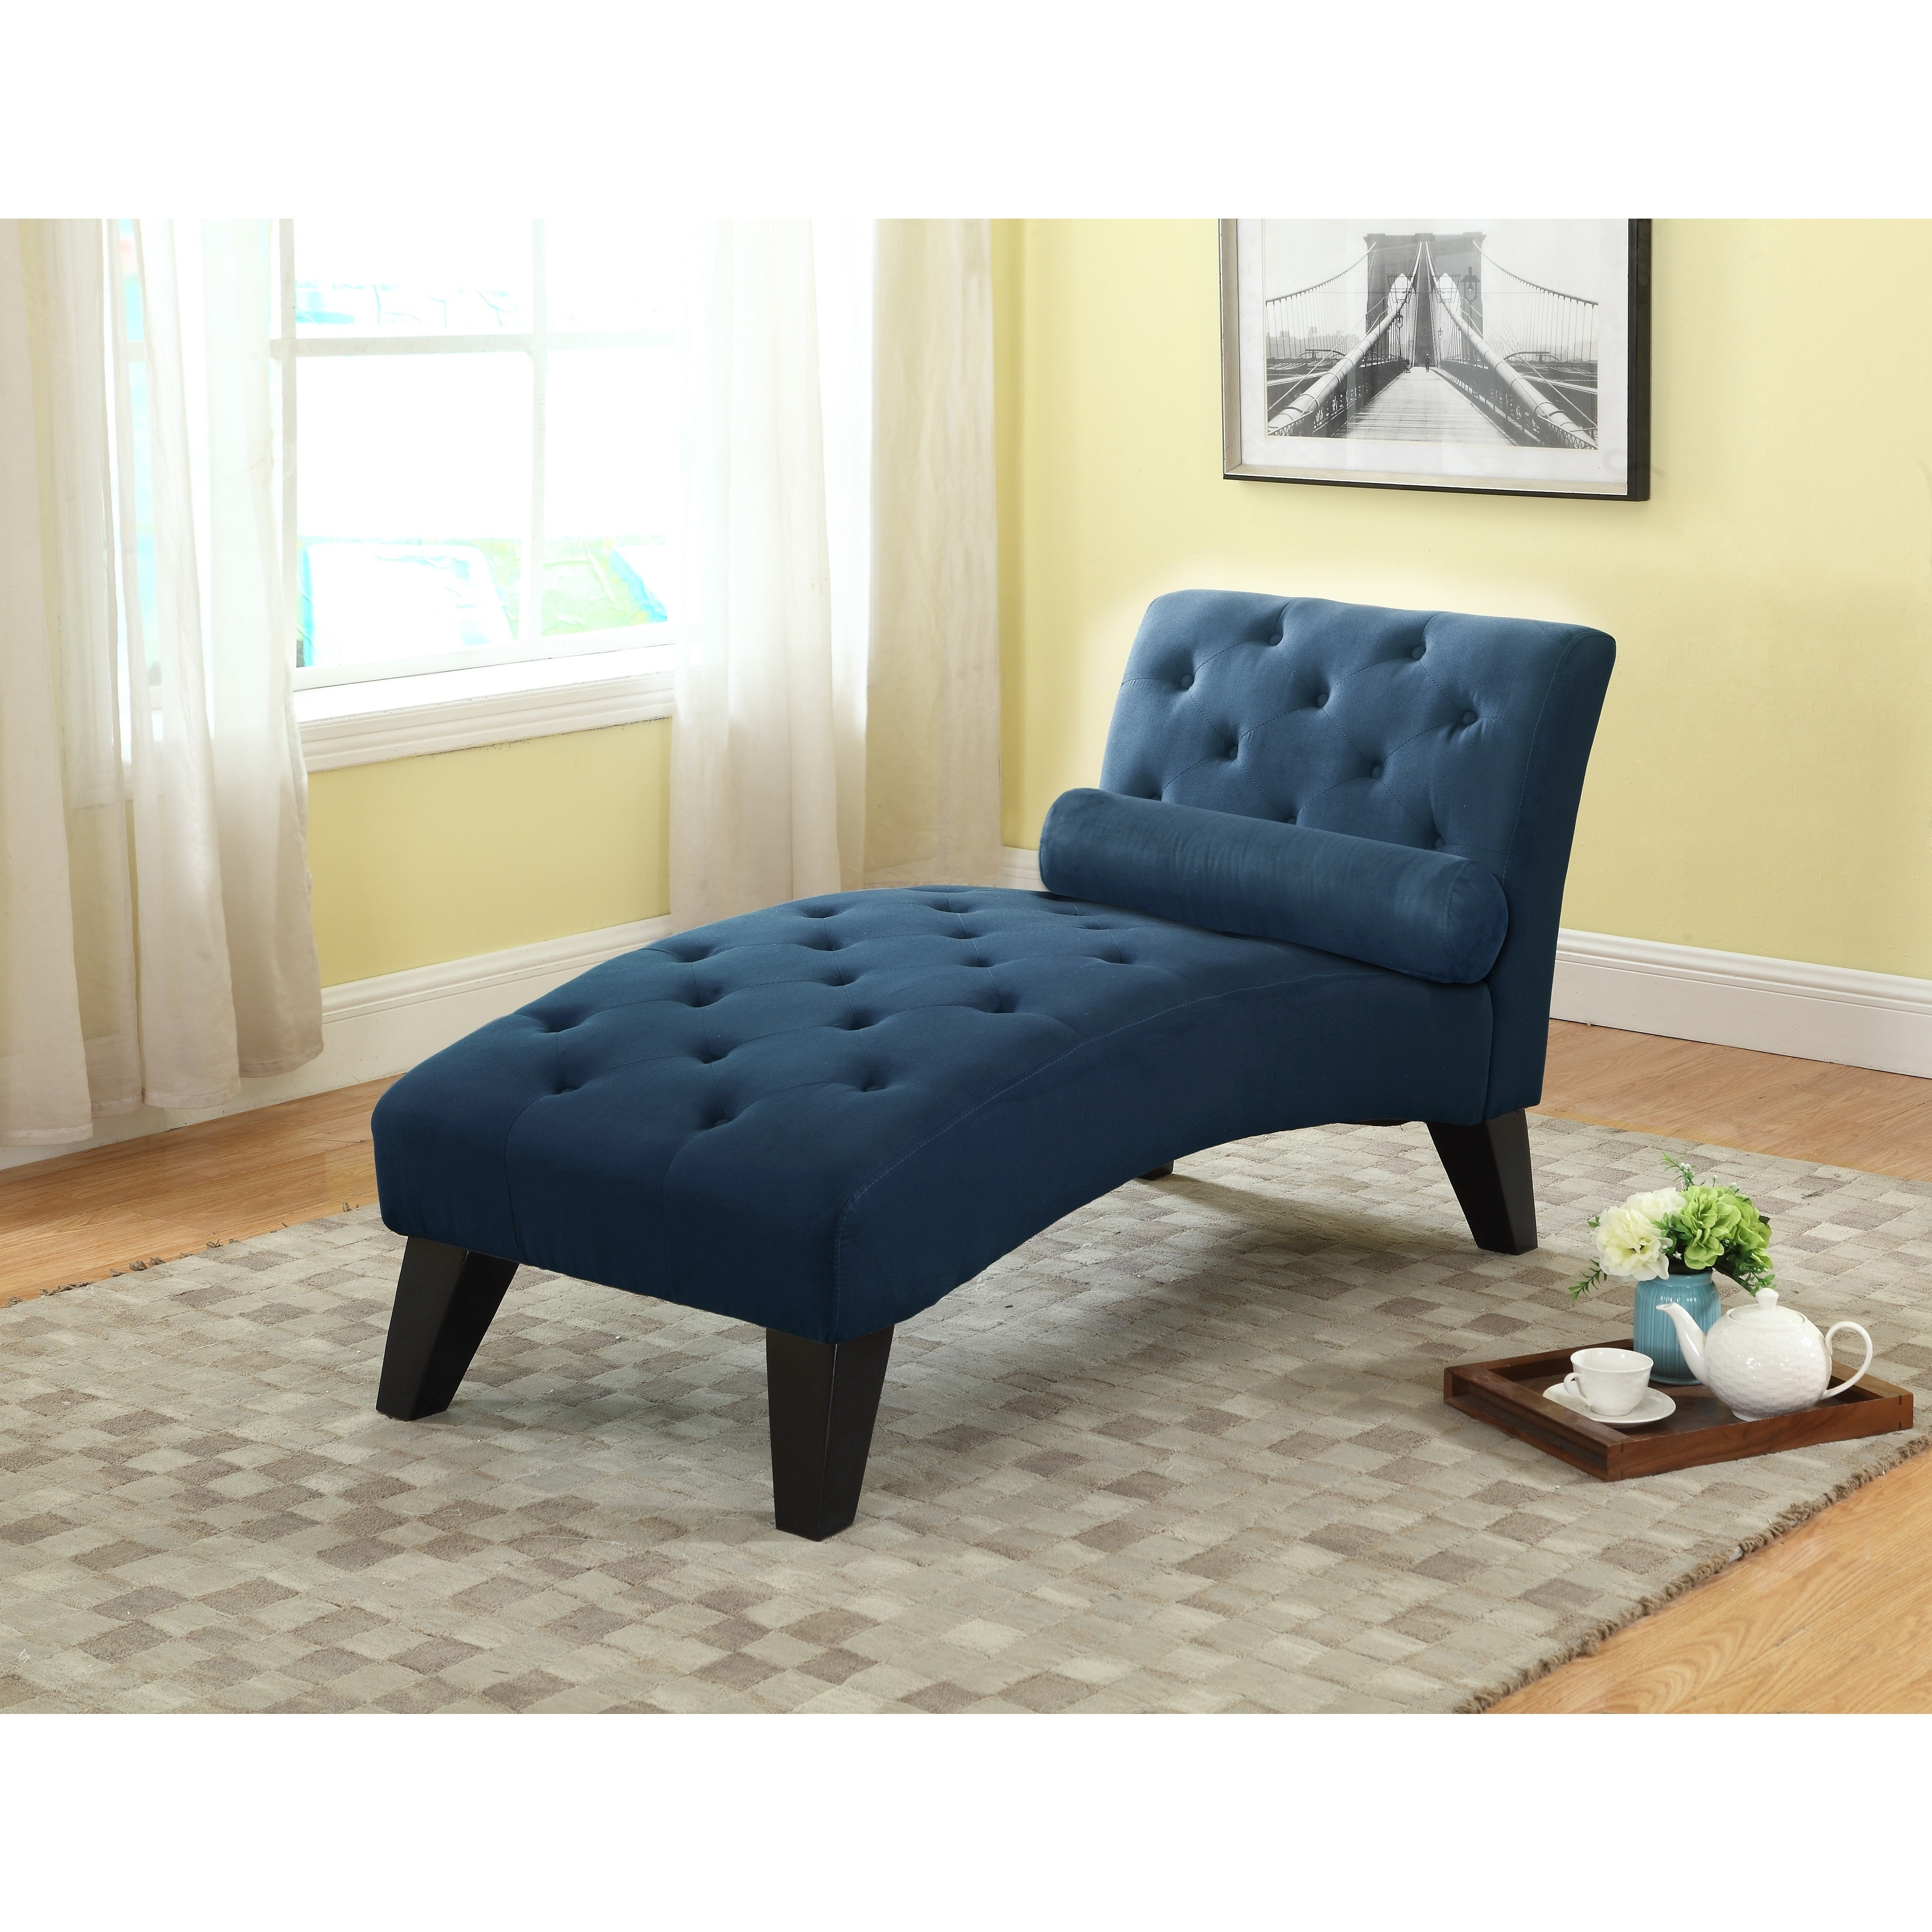 Clay Alder Home Rialto Tufted Blue Microfiber Chaise Lounge Free Shipping Today 23122759